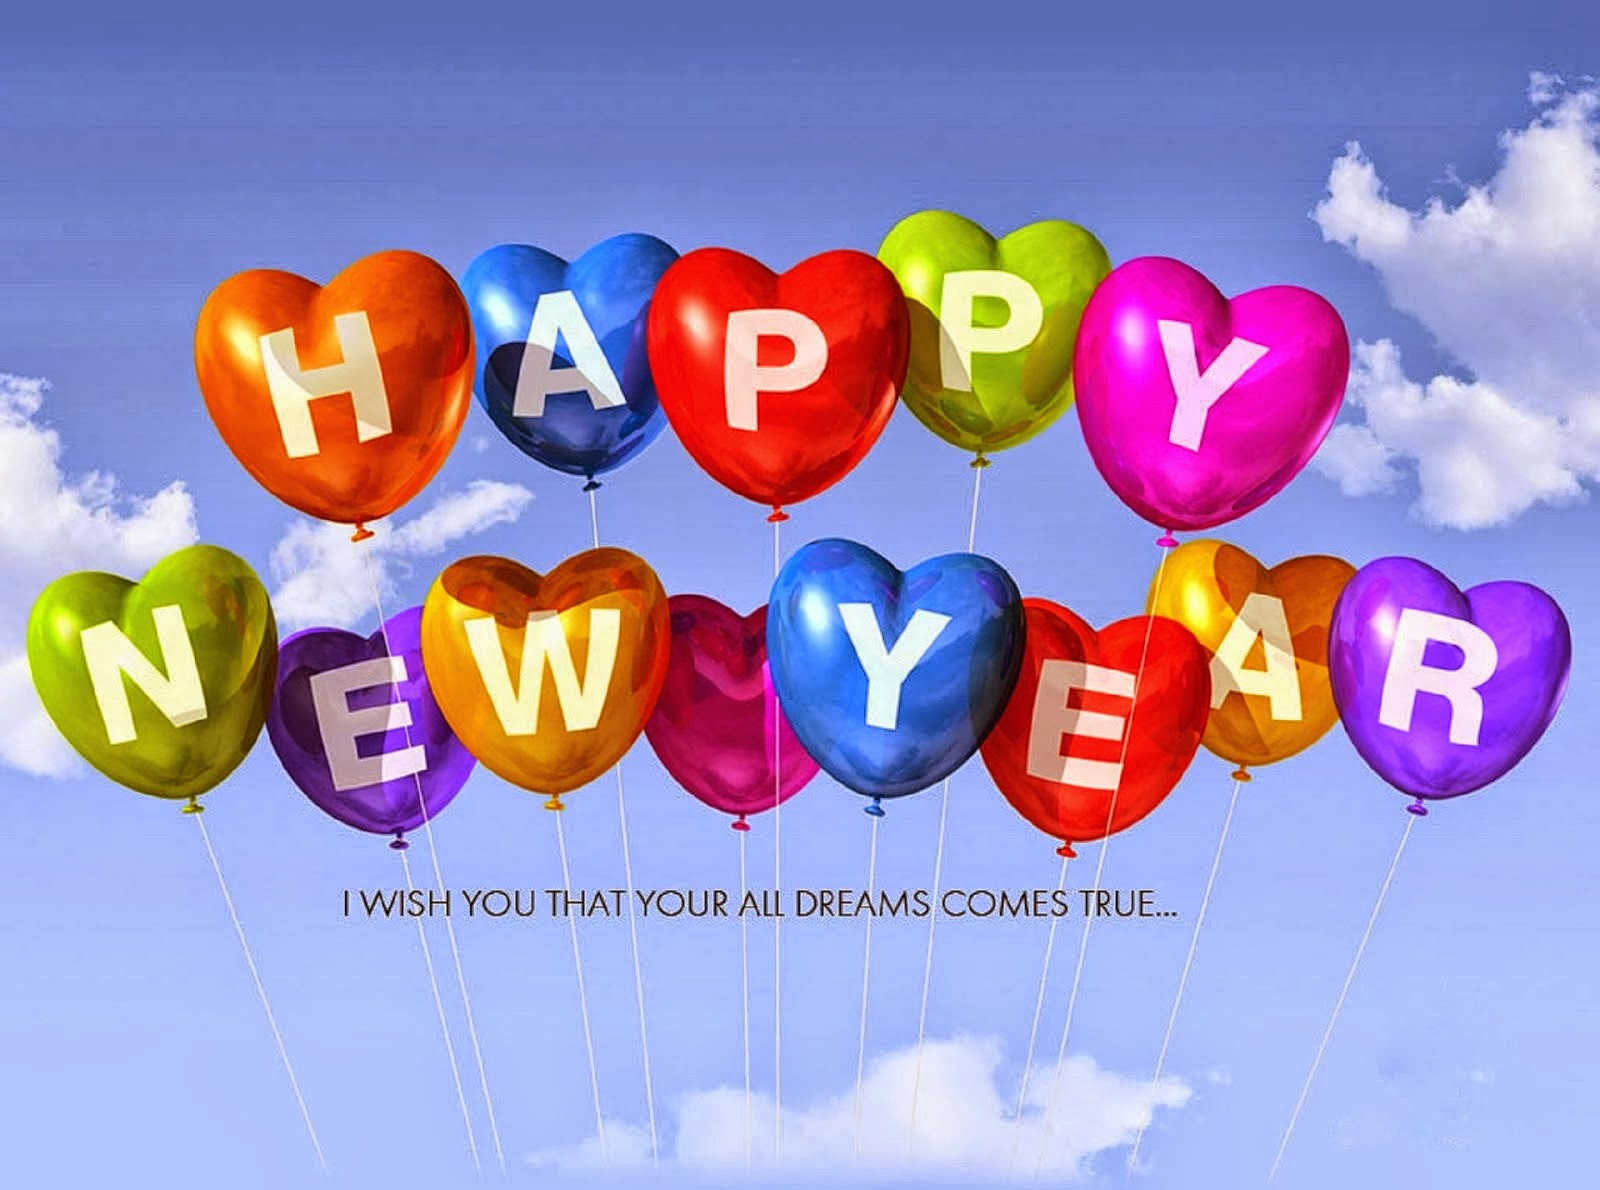 Wish you happy New Year Image wallpaper for whatsapp